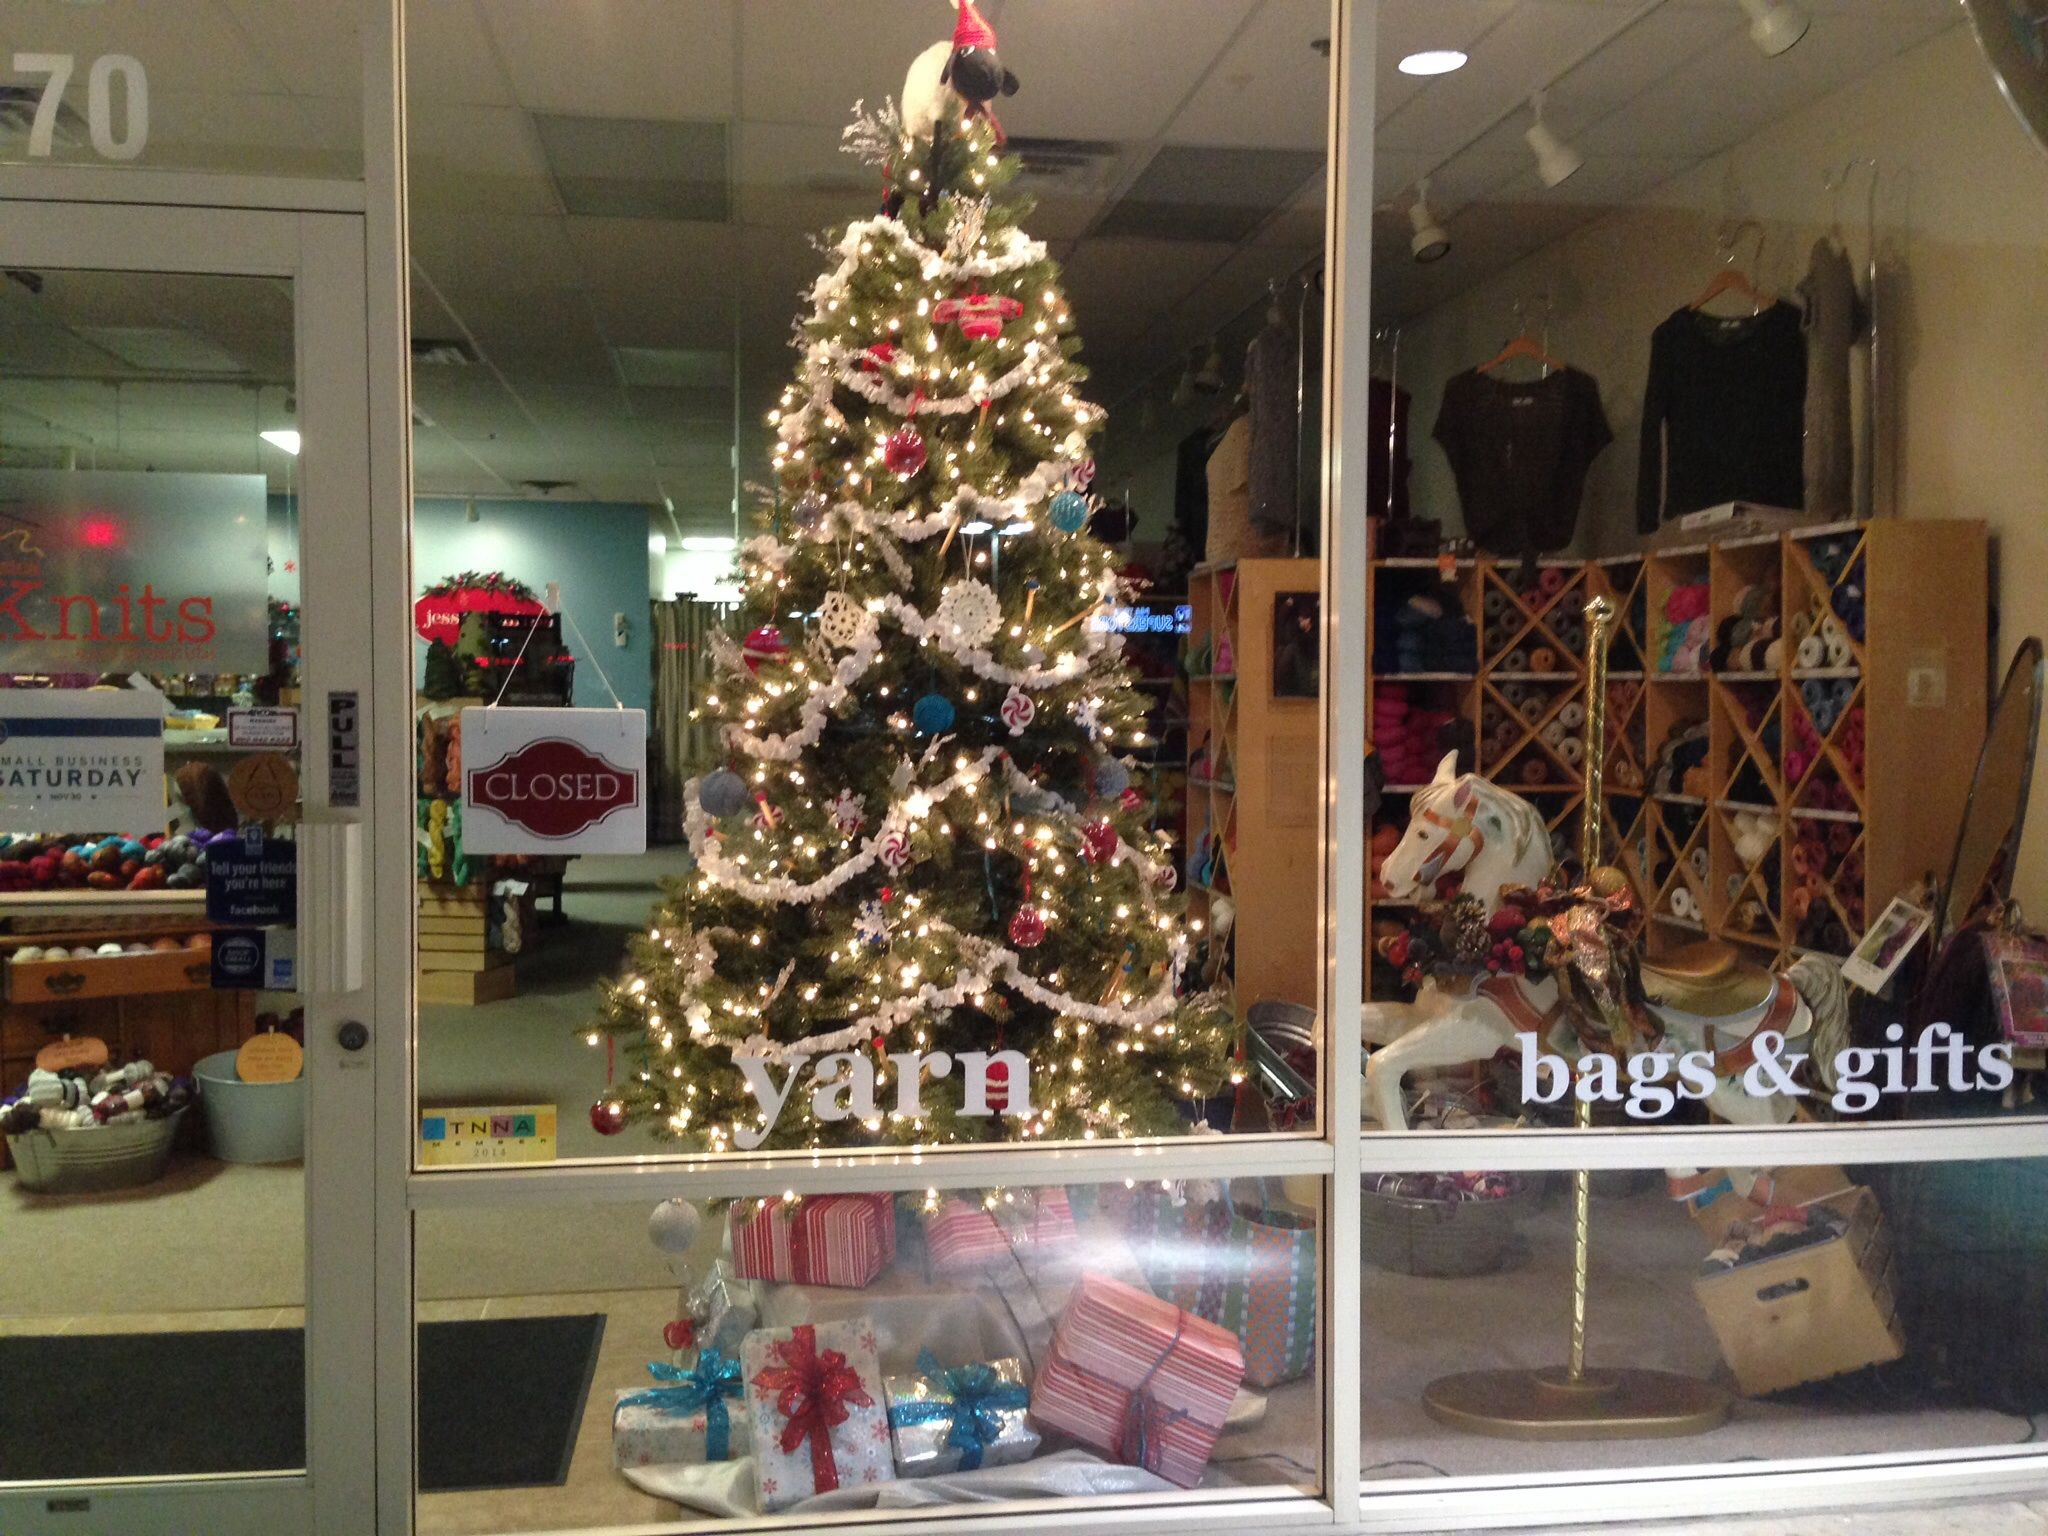 Our store front...ready for the holidays!